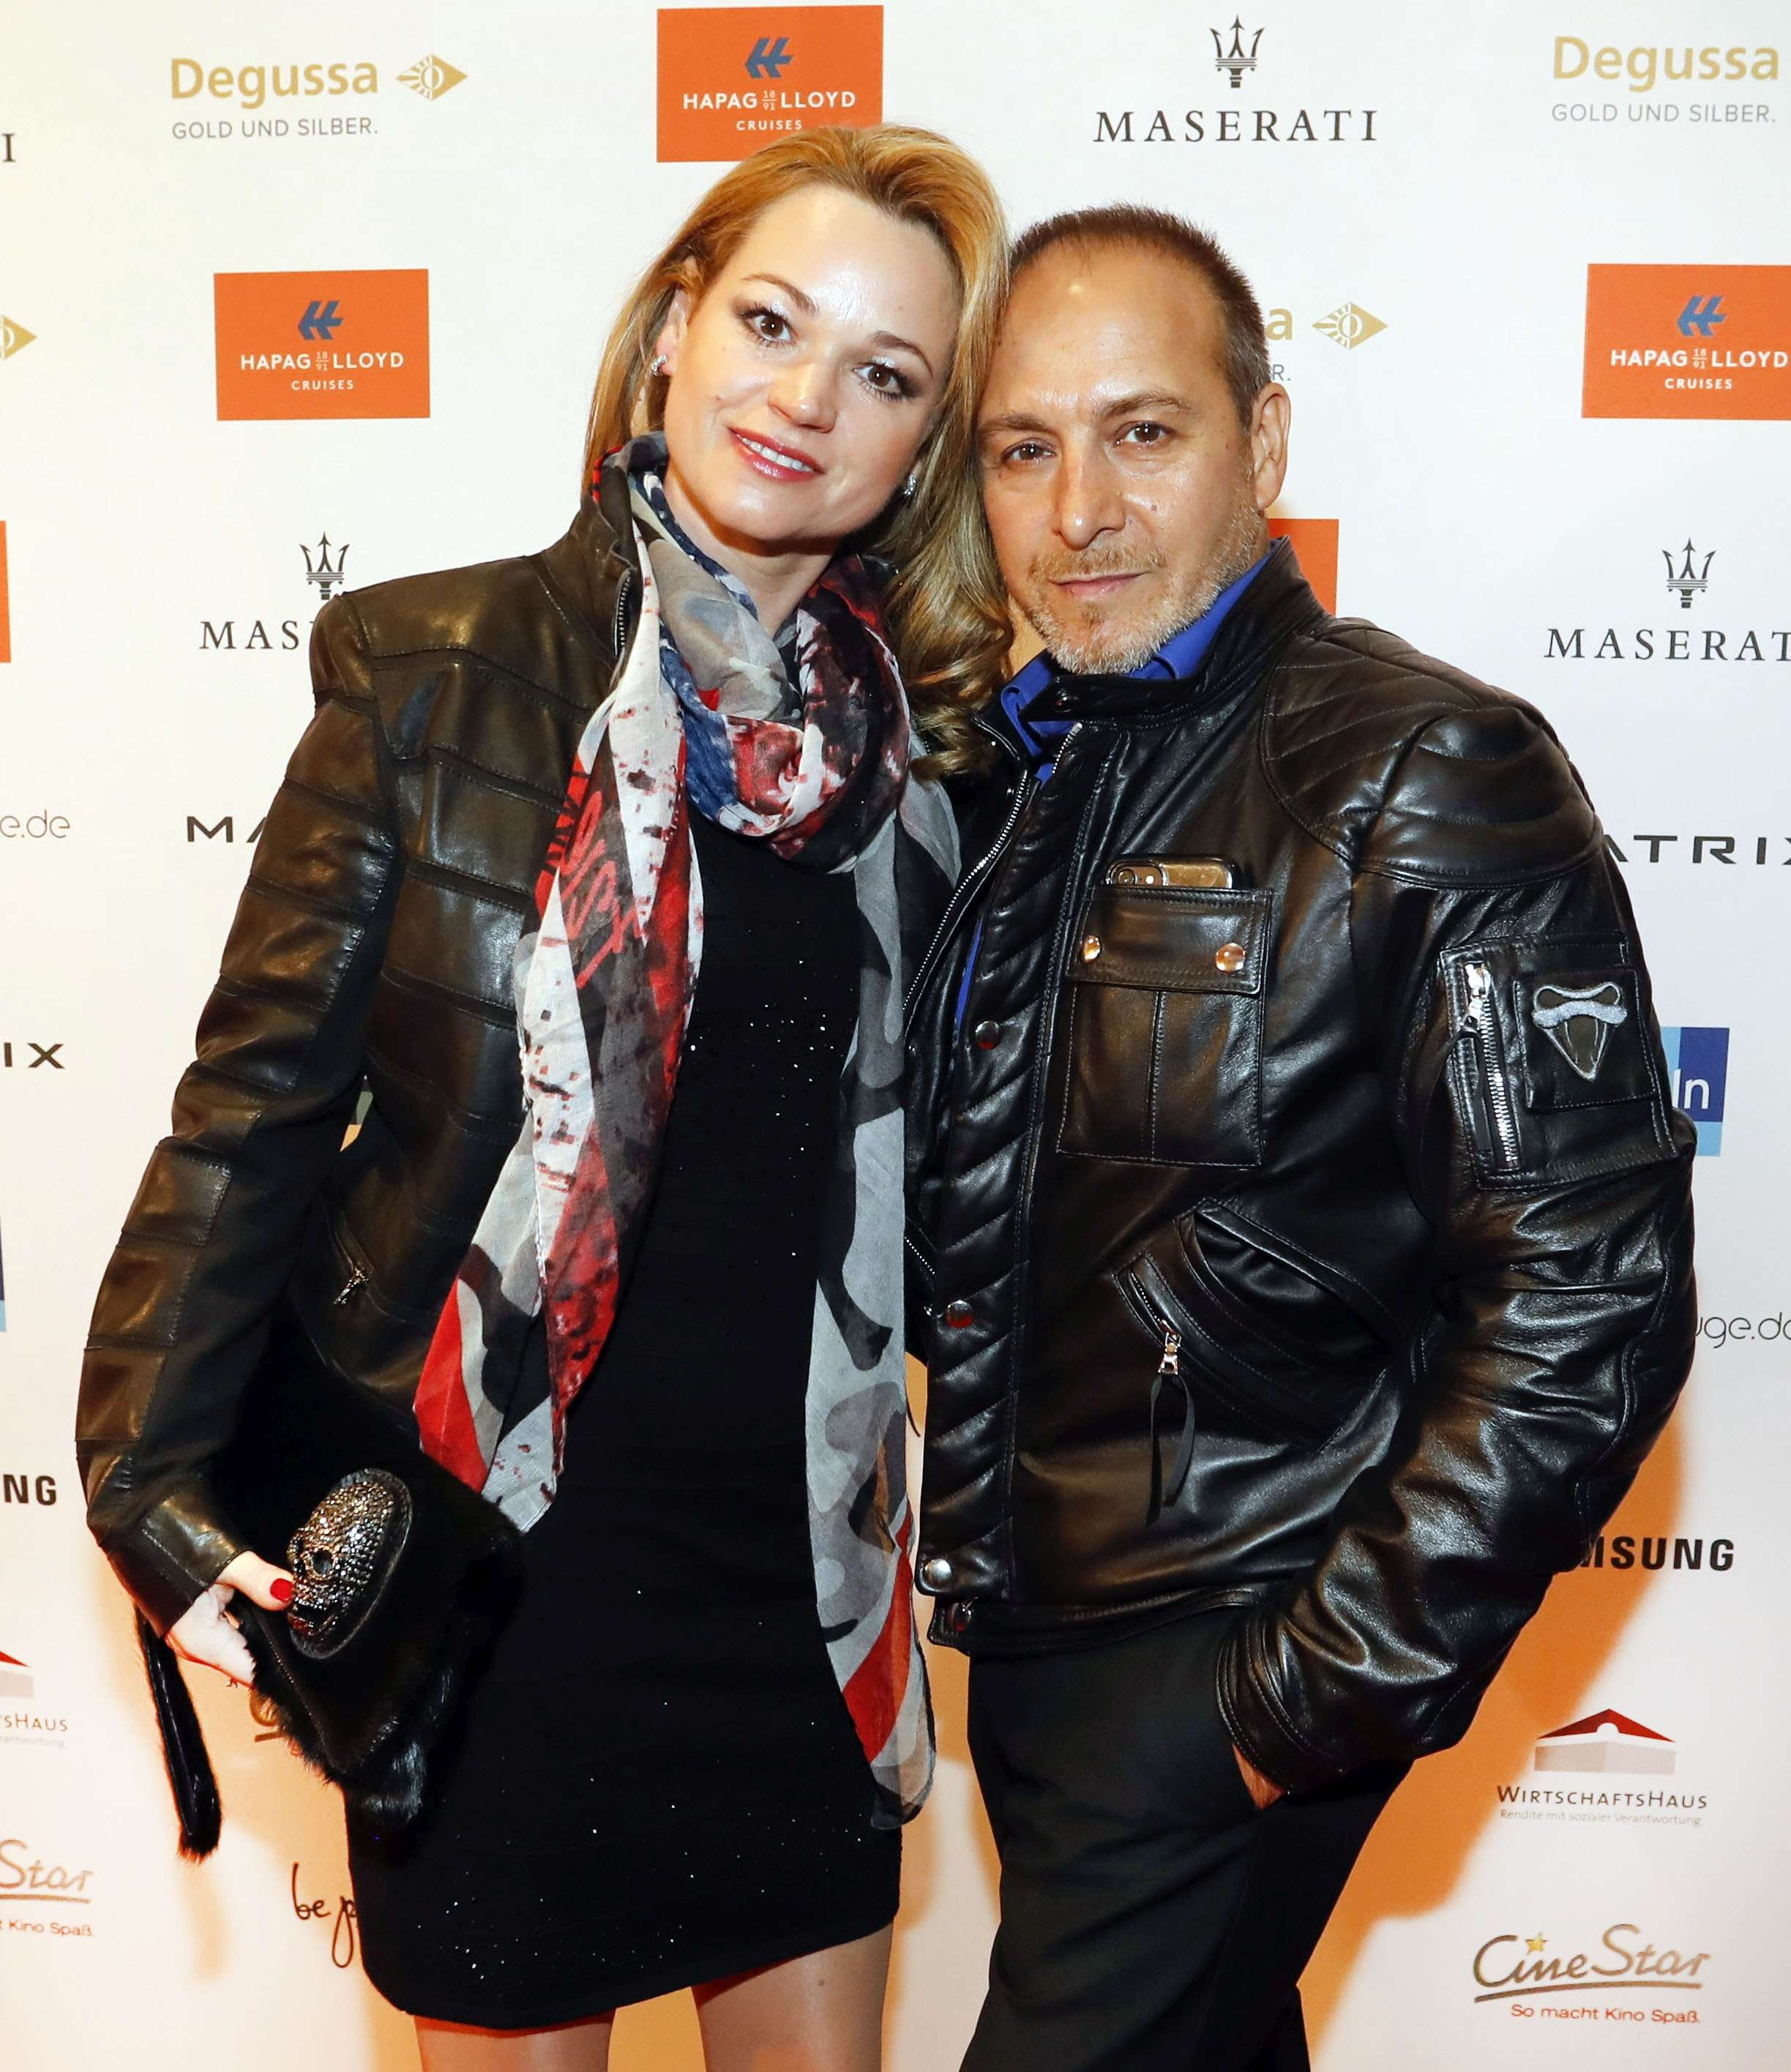 Katja Ohnech, Erdogan Atalay bei Movie meets Media im Palace Hotel Berlin. © Agentur Baganz